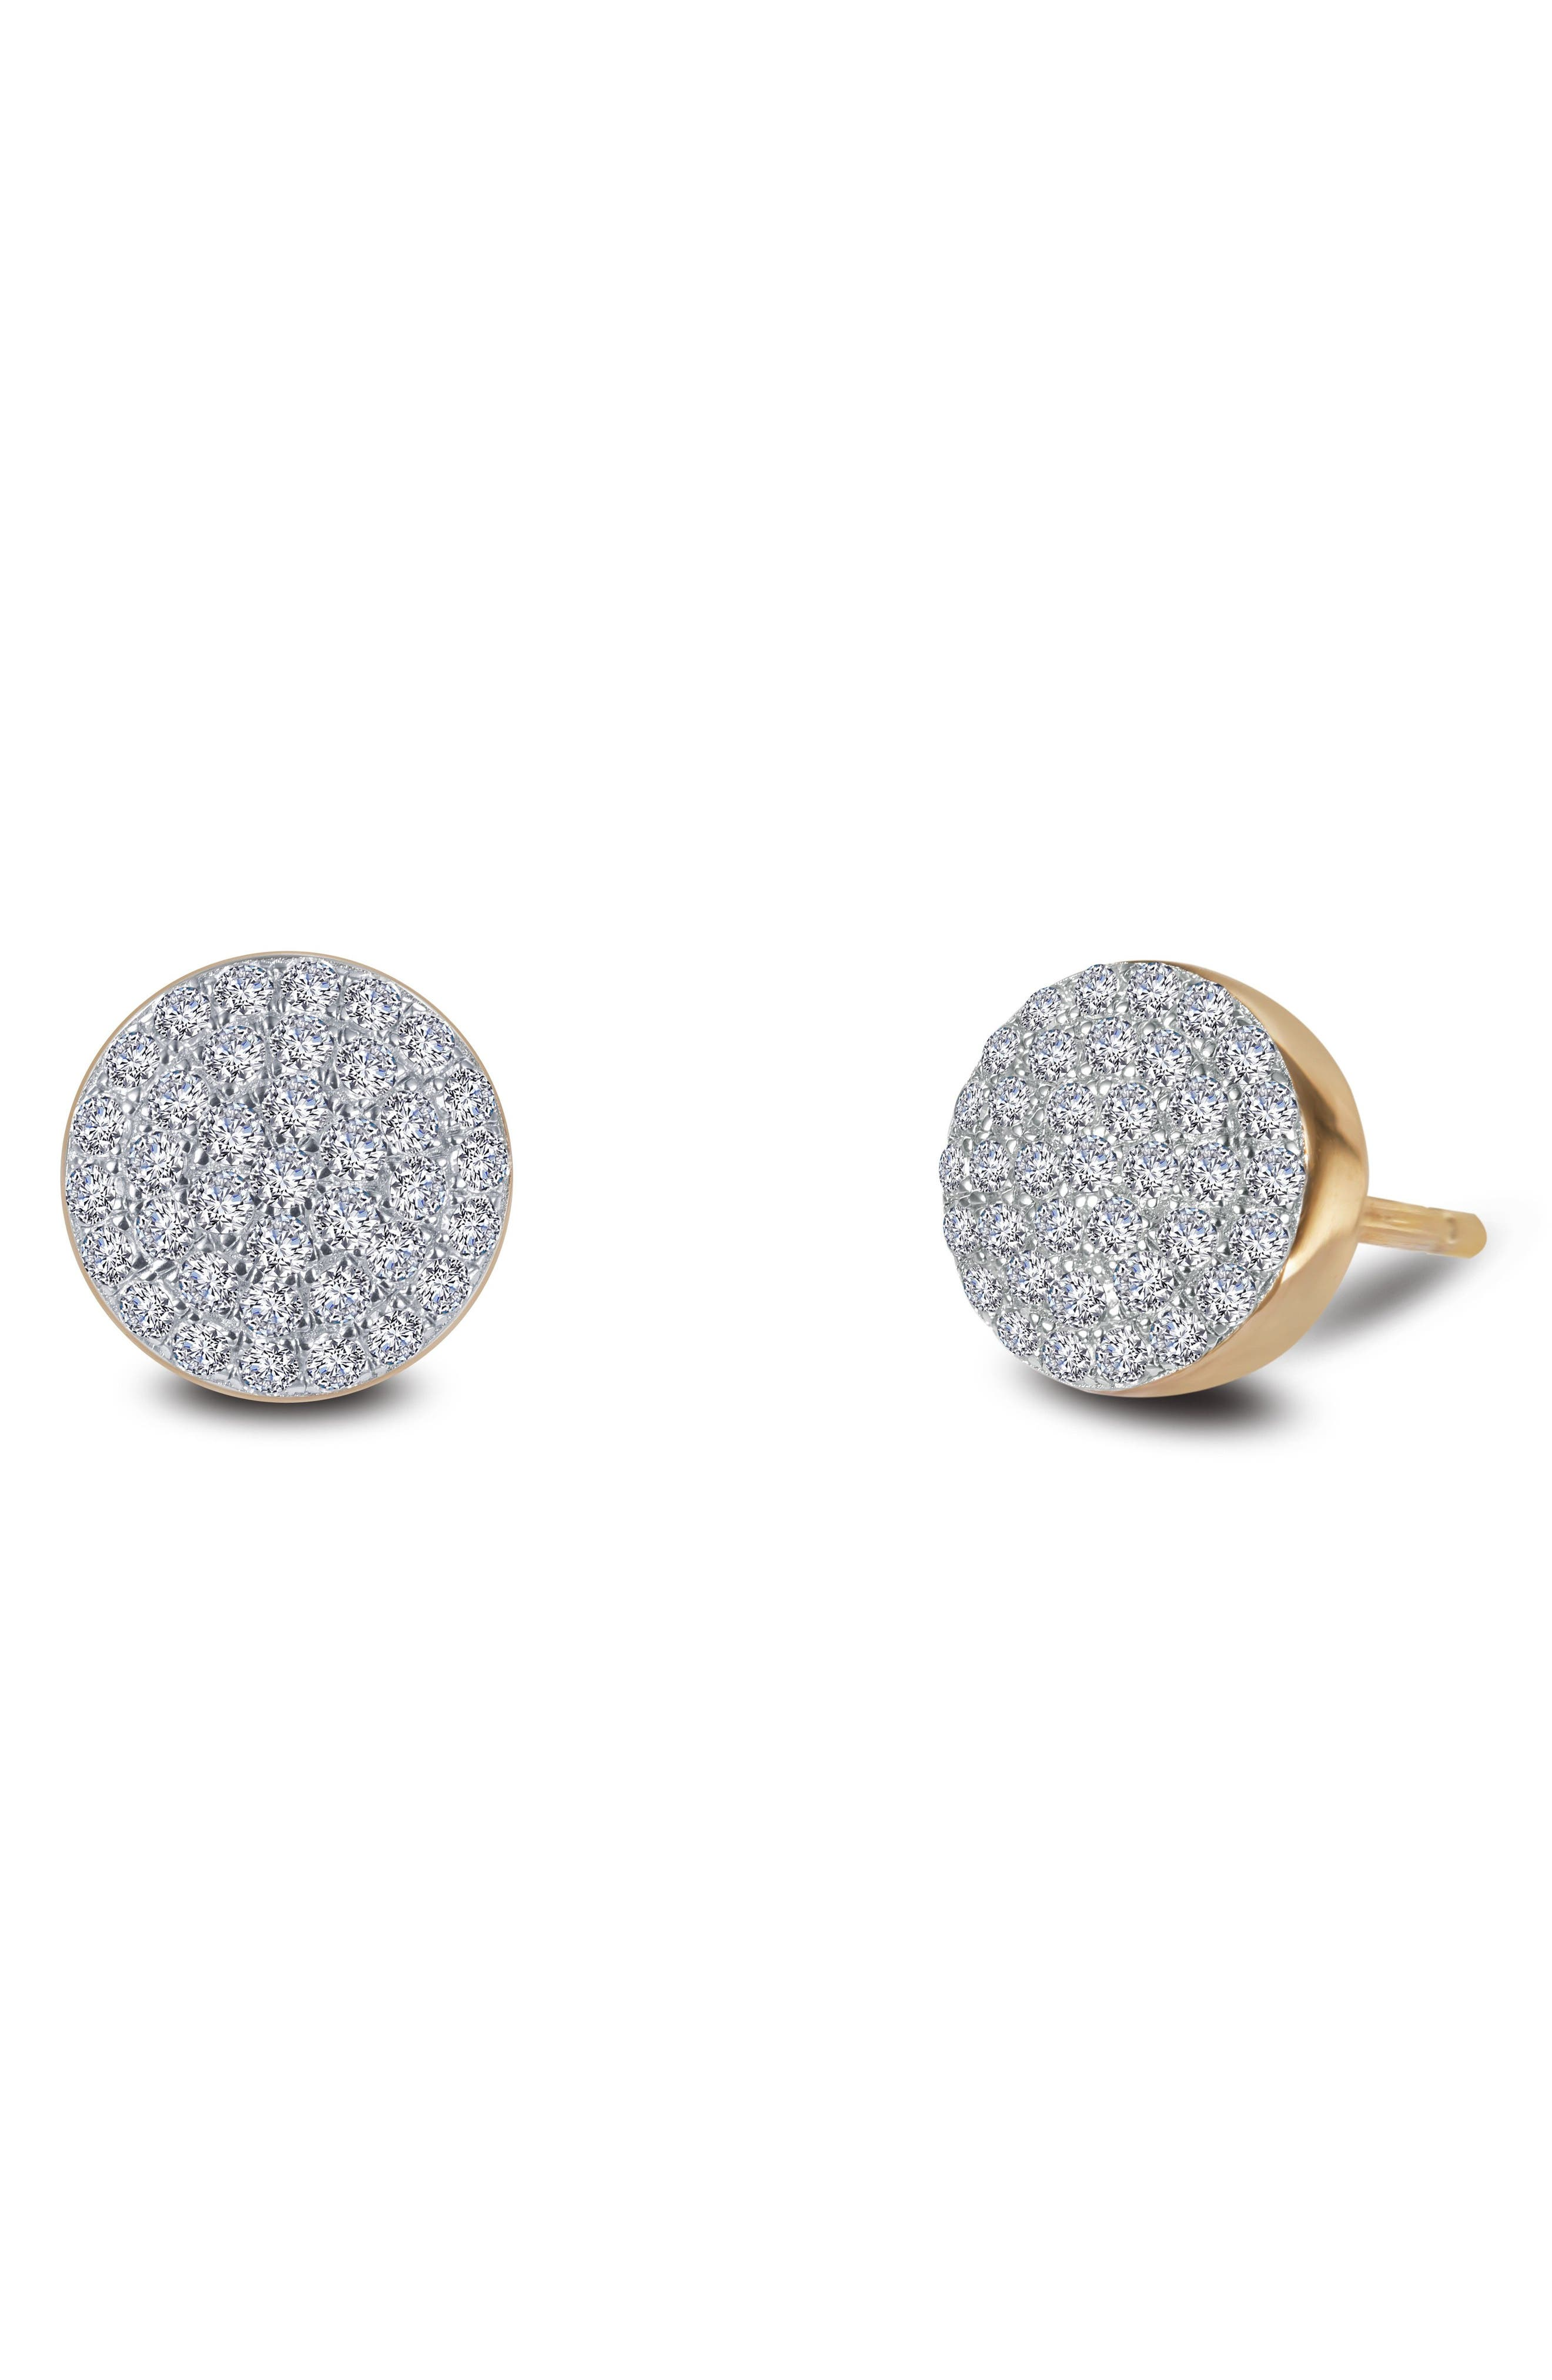 Two-Tone Pavé Button Stud Earrings,                         Main,                         color, SILVER/ GOLD/ CLEAR